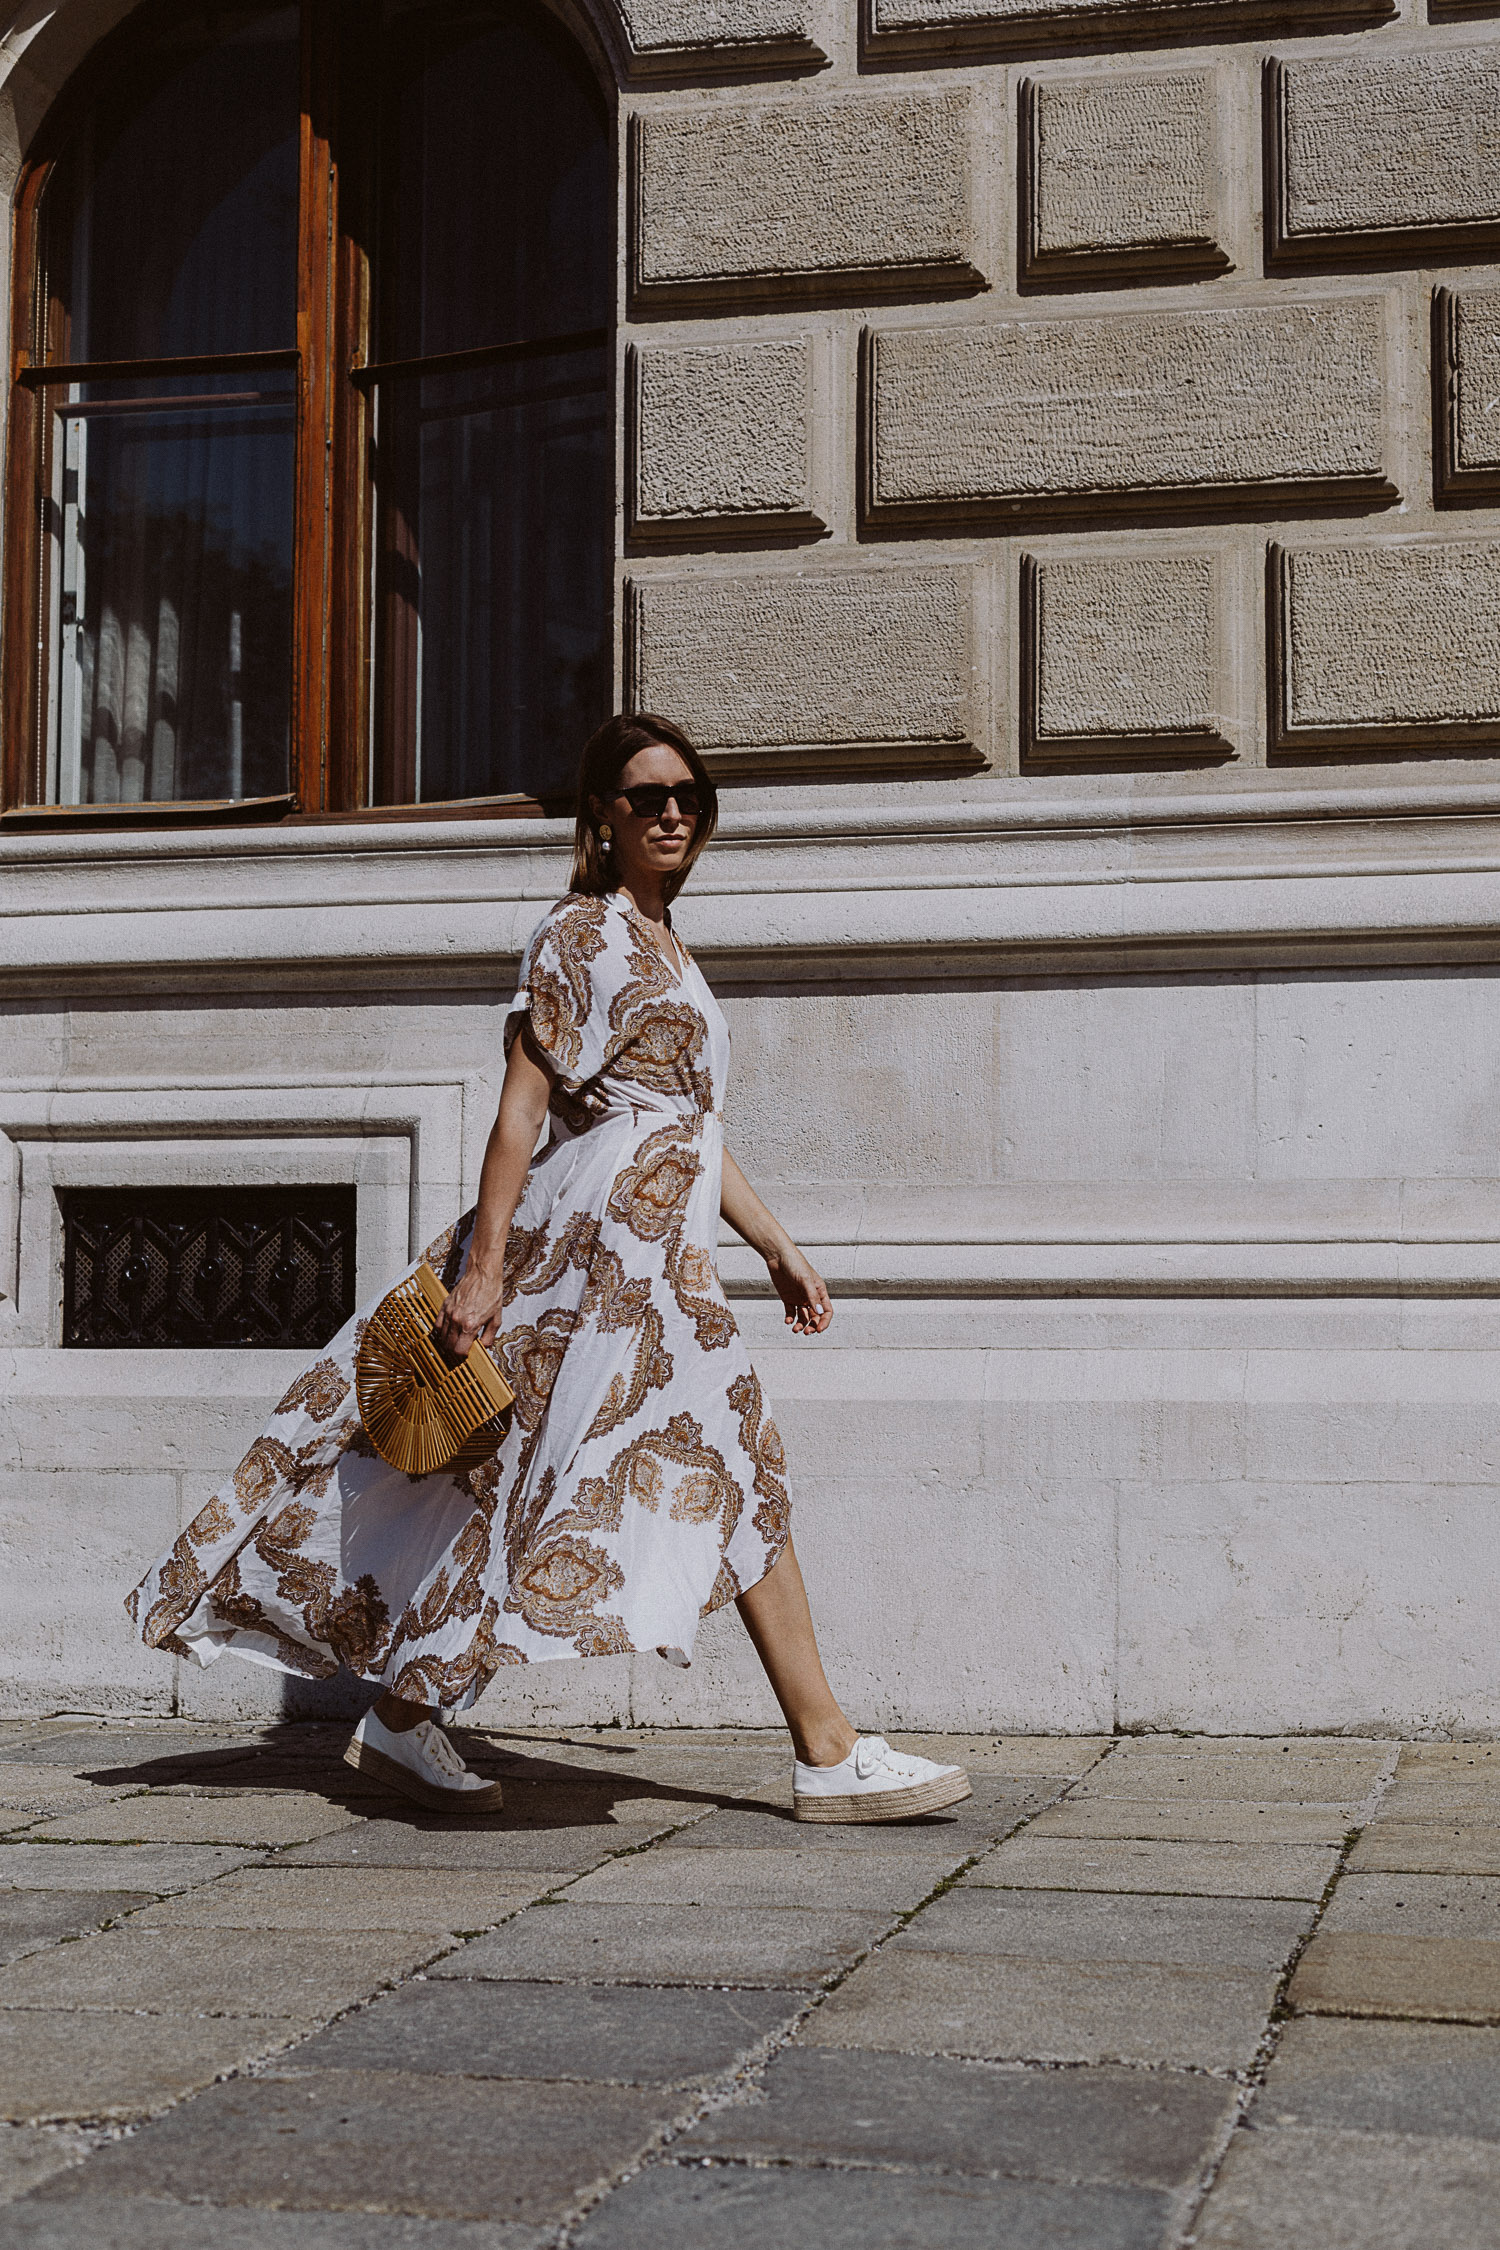 H&M Summer Collection Outfits | The Daily Dose